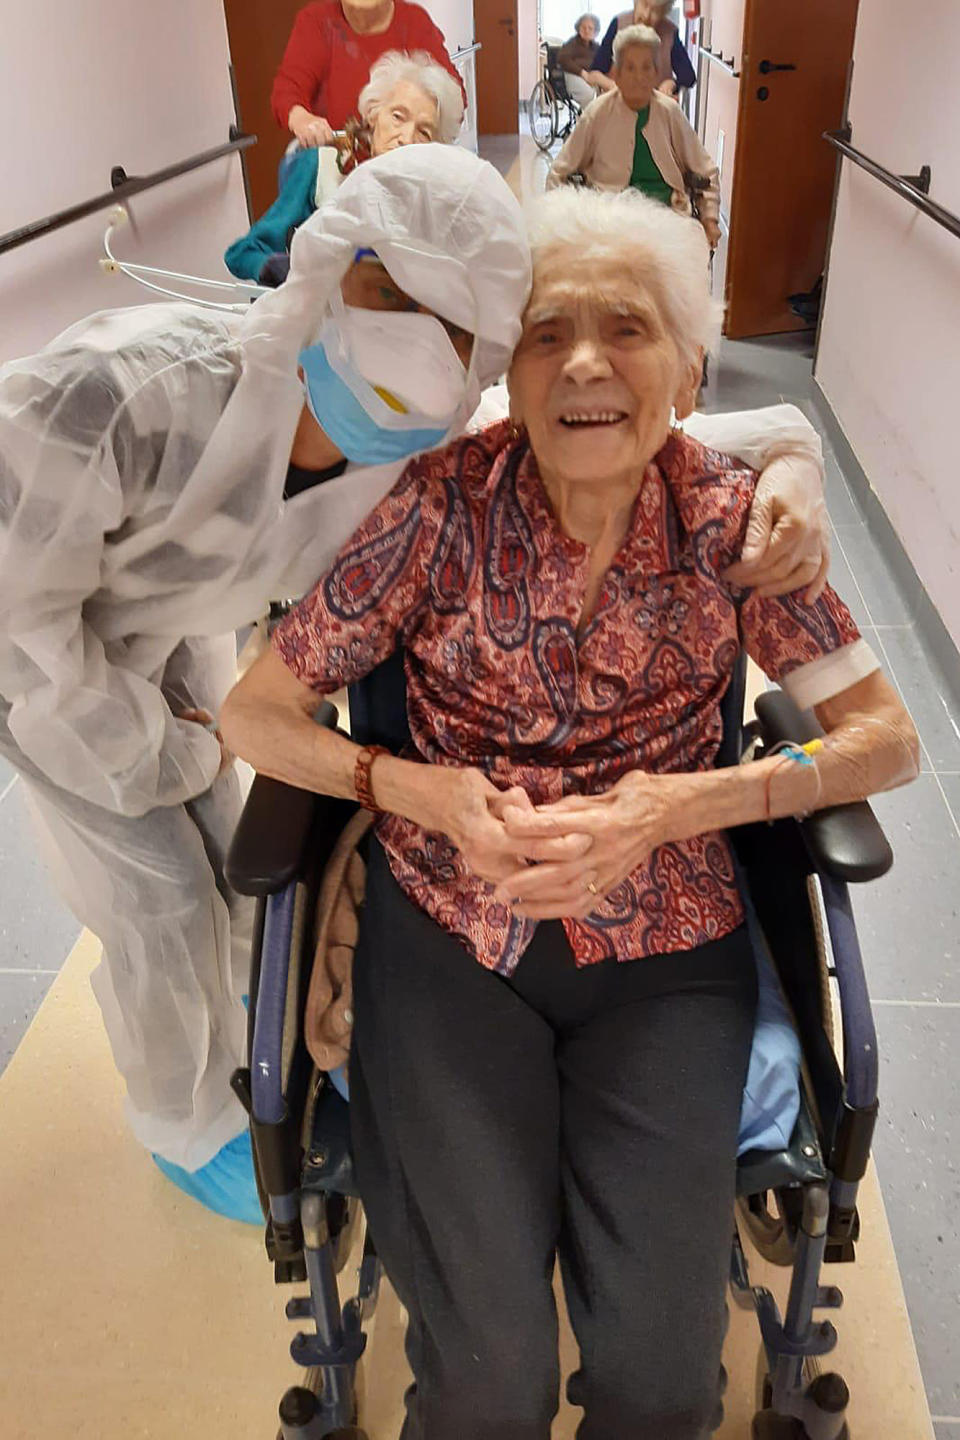 """In this photo taken on April 1, 2020, 103-year-old Ada Zanusso, poses with a nurse at the old people's home """"Maria Grazia"""" in Lessona, northern Italy, after recovering from Covid-19 infection. To recover from coronavirus infection, as she did, Zanusso recommends courage and faith, the same qualities that have served her well in her nearly 104 years on Earth.The new coronavirus causes mild or moderate symptoms for most people, but for some, especially older adults and people with existing health problems, it can cause more severe illness or death. (Residenza Maria Grazia Lessona via AP Photo)"""